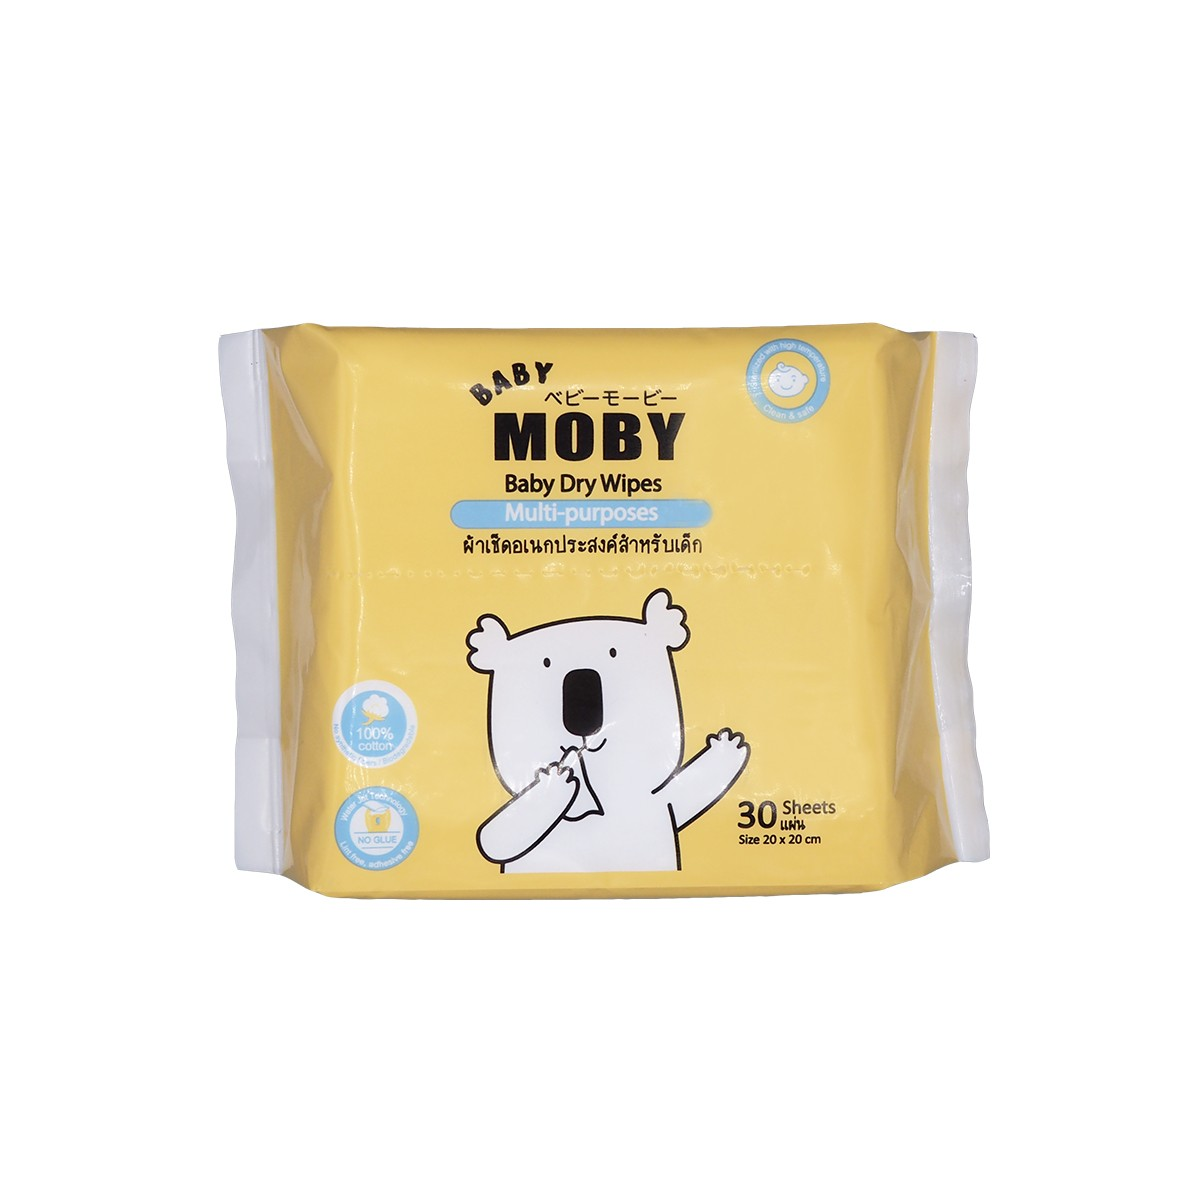 Baby Moby Dry Wipes 30s - Mighty Baby PH